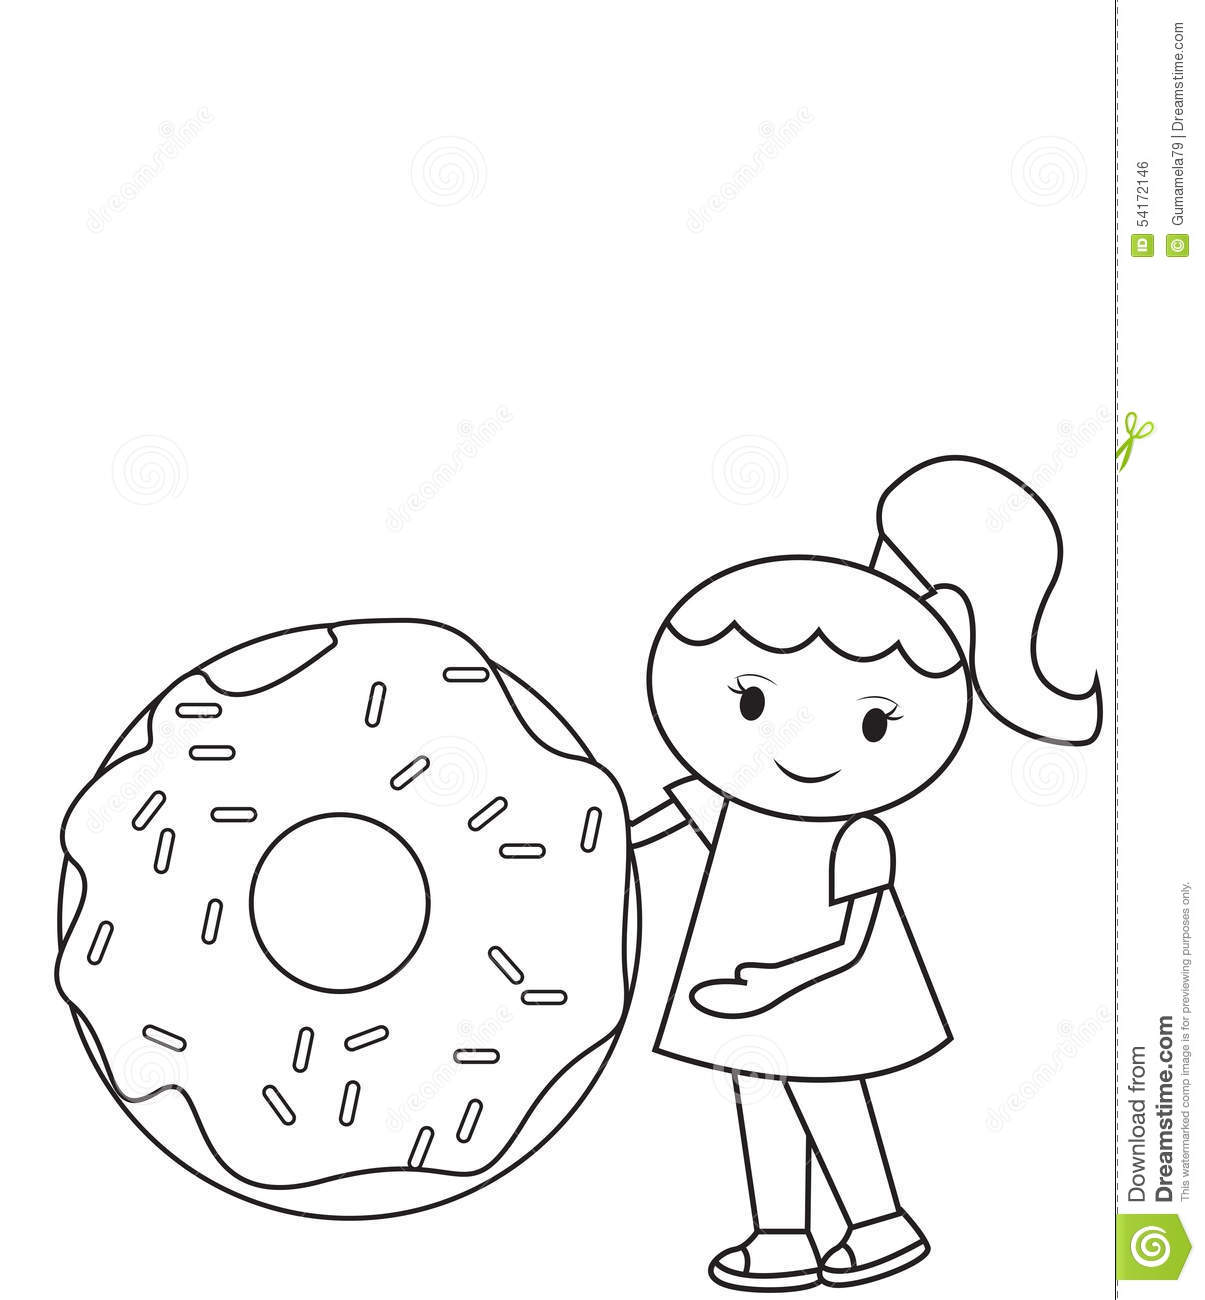 The Girl And The Big Doughnut Coloring Page Stock Illustration